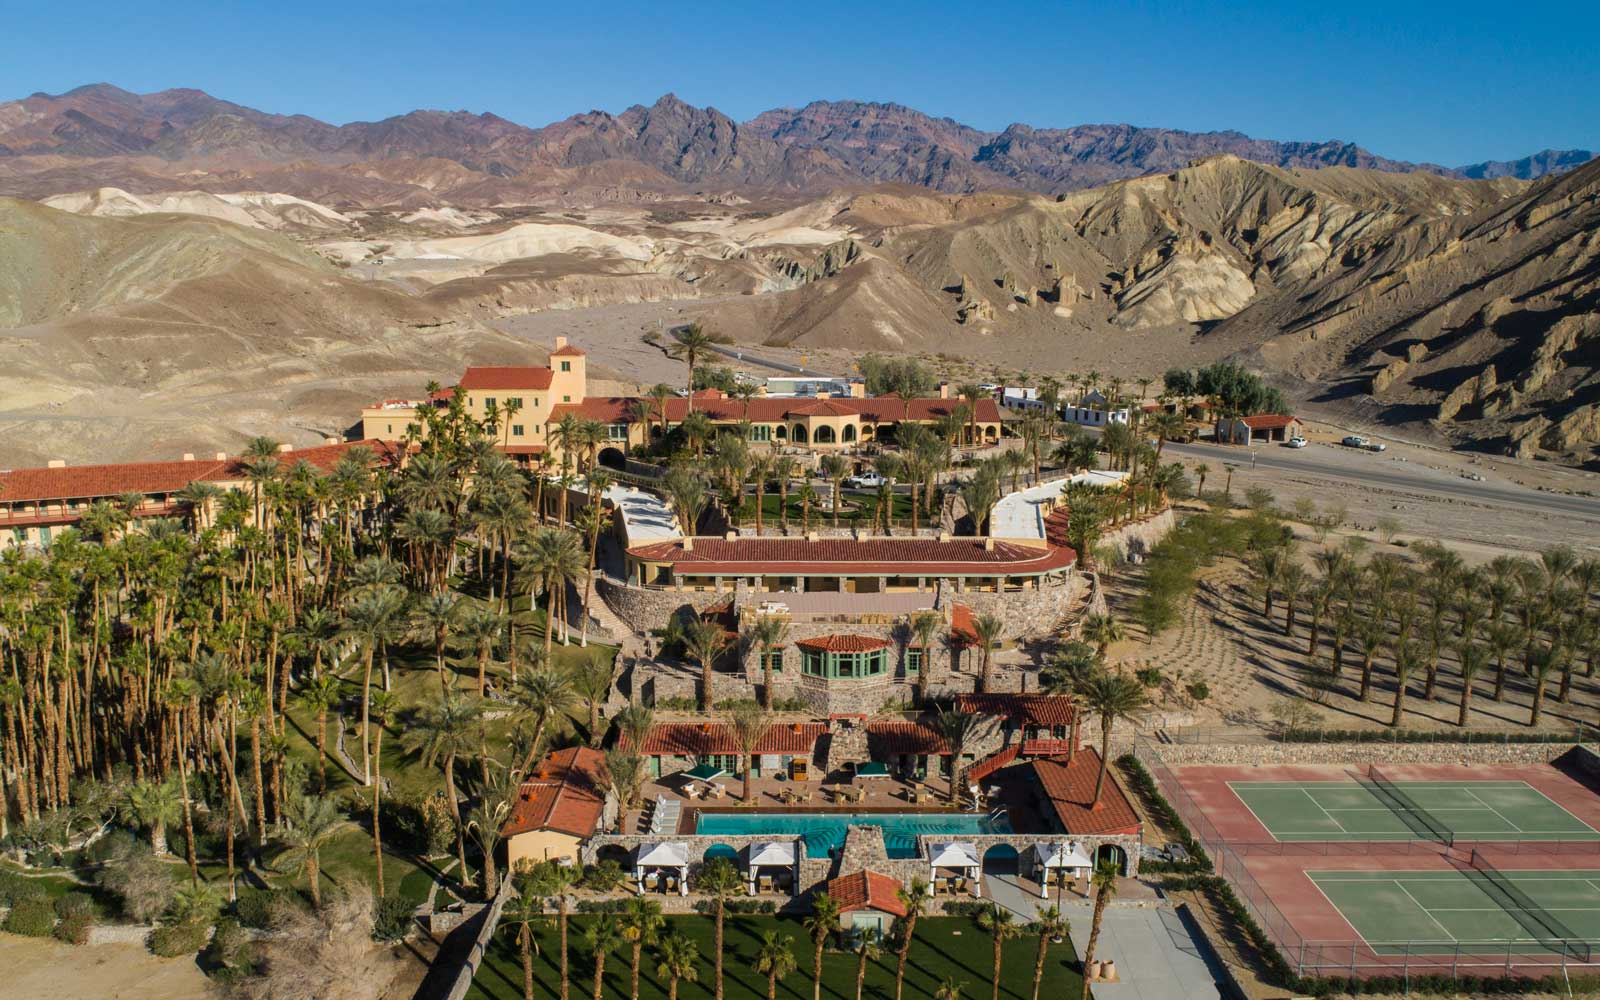 The Oasis Inn at Death Valley